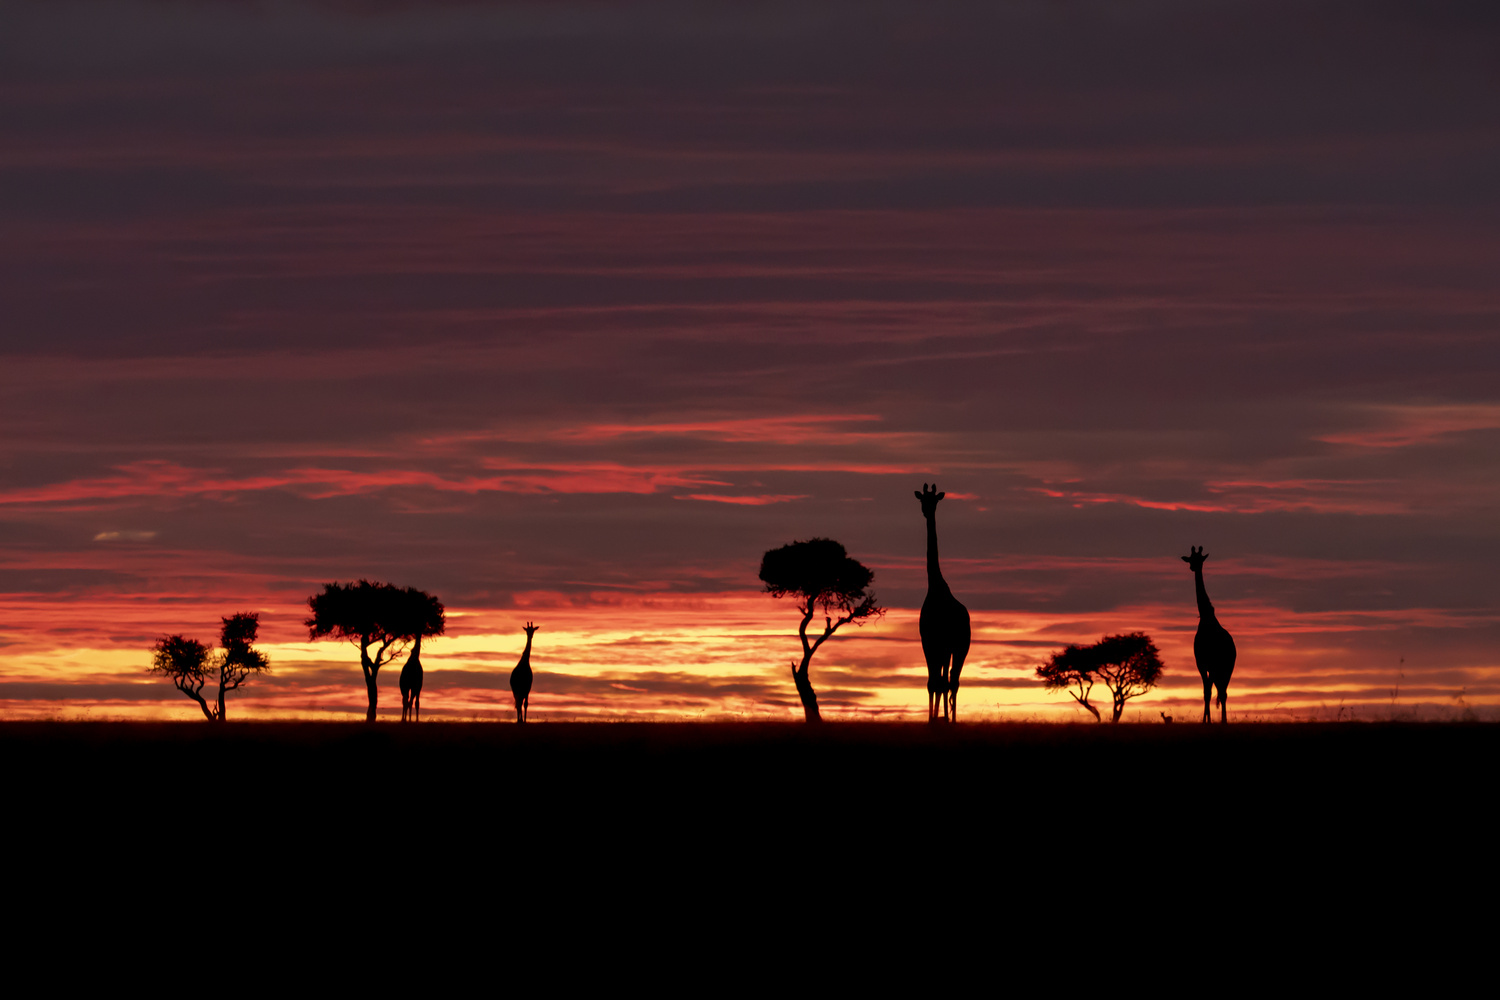 African Sunset by Steve Bryant